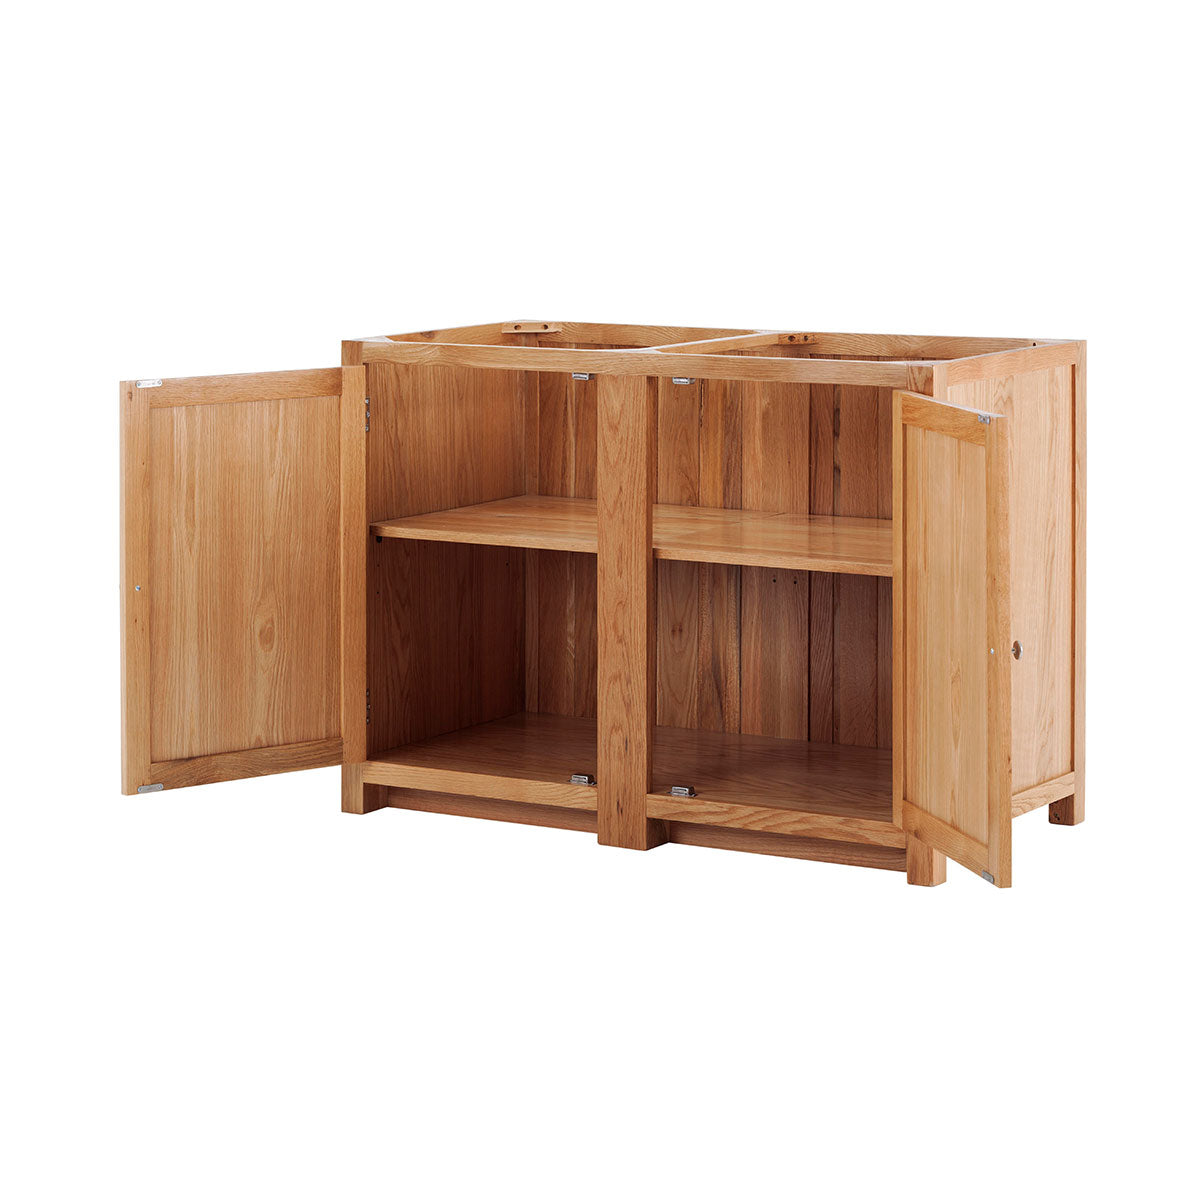 2 Door Cabinet with Shelf